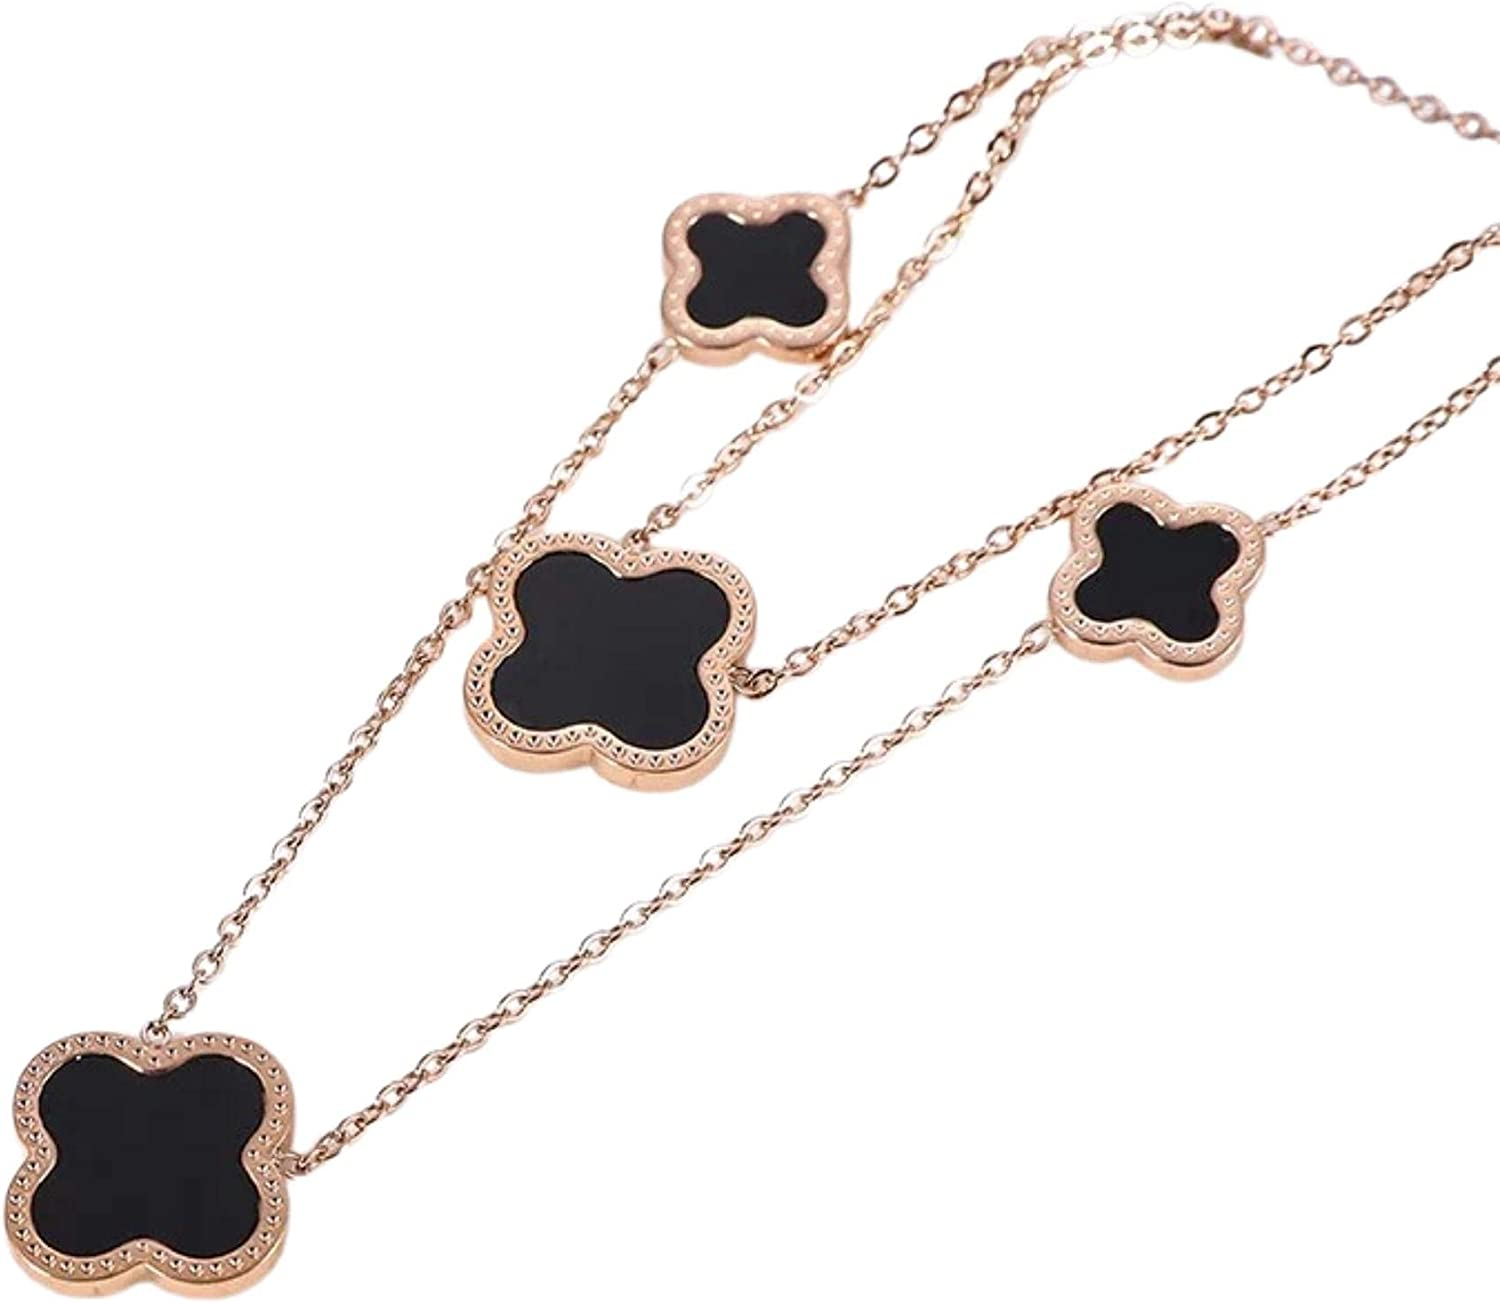 """Dainty 18"""" Double Chain Adjustable Designer Inspired 18K Rose Gold Plated Clover Charm Necklace"""